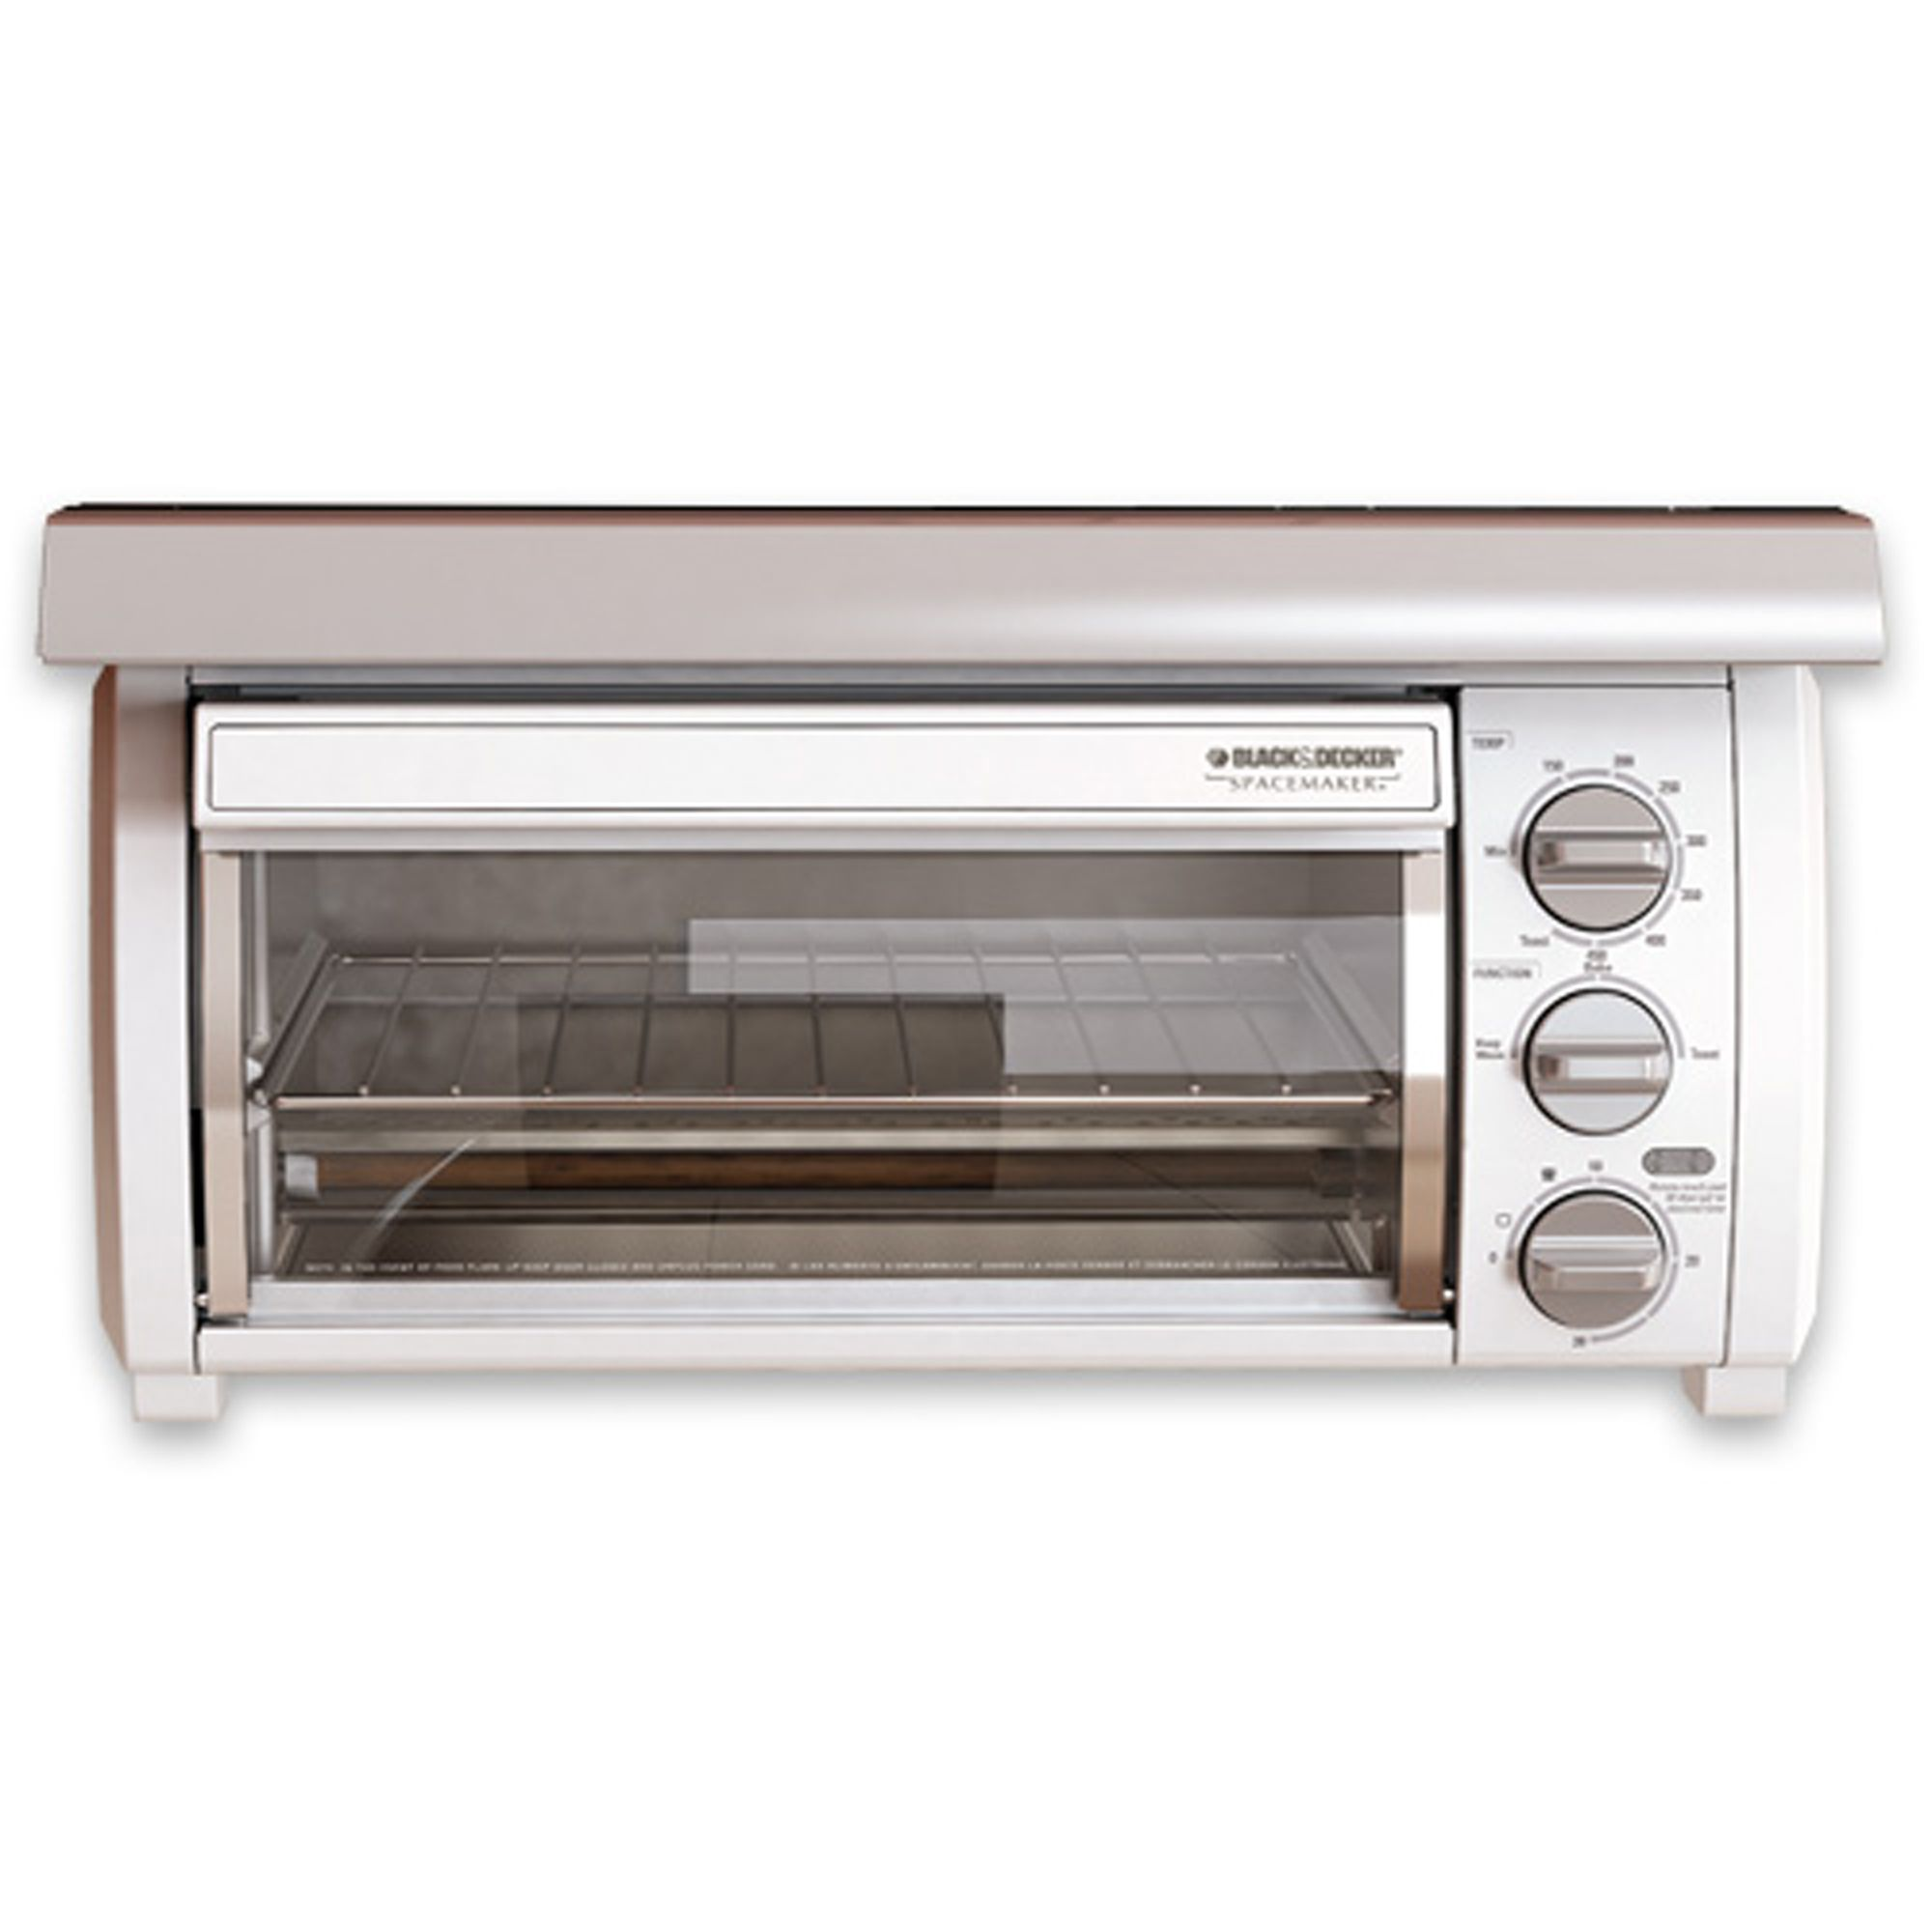 I Have Made Everything From Toast To Cookies In My Toaster Oven It Makes Toasting Coconut So Easy I Never Burn It When I Toaster Oven Toaster Black Decker